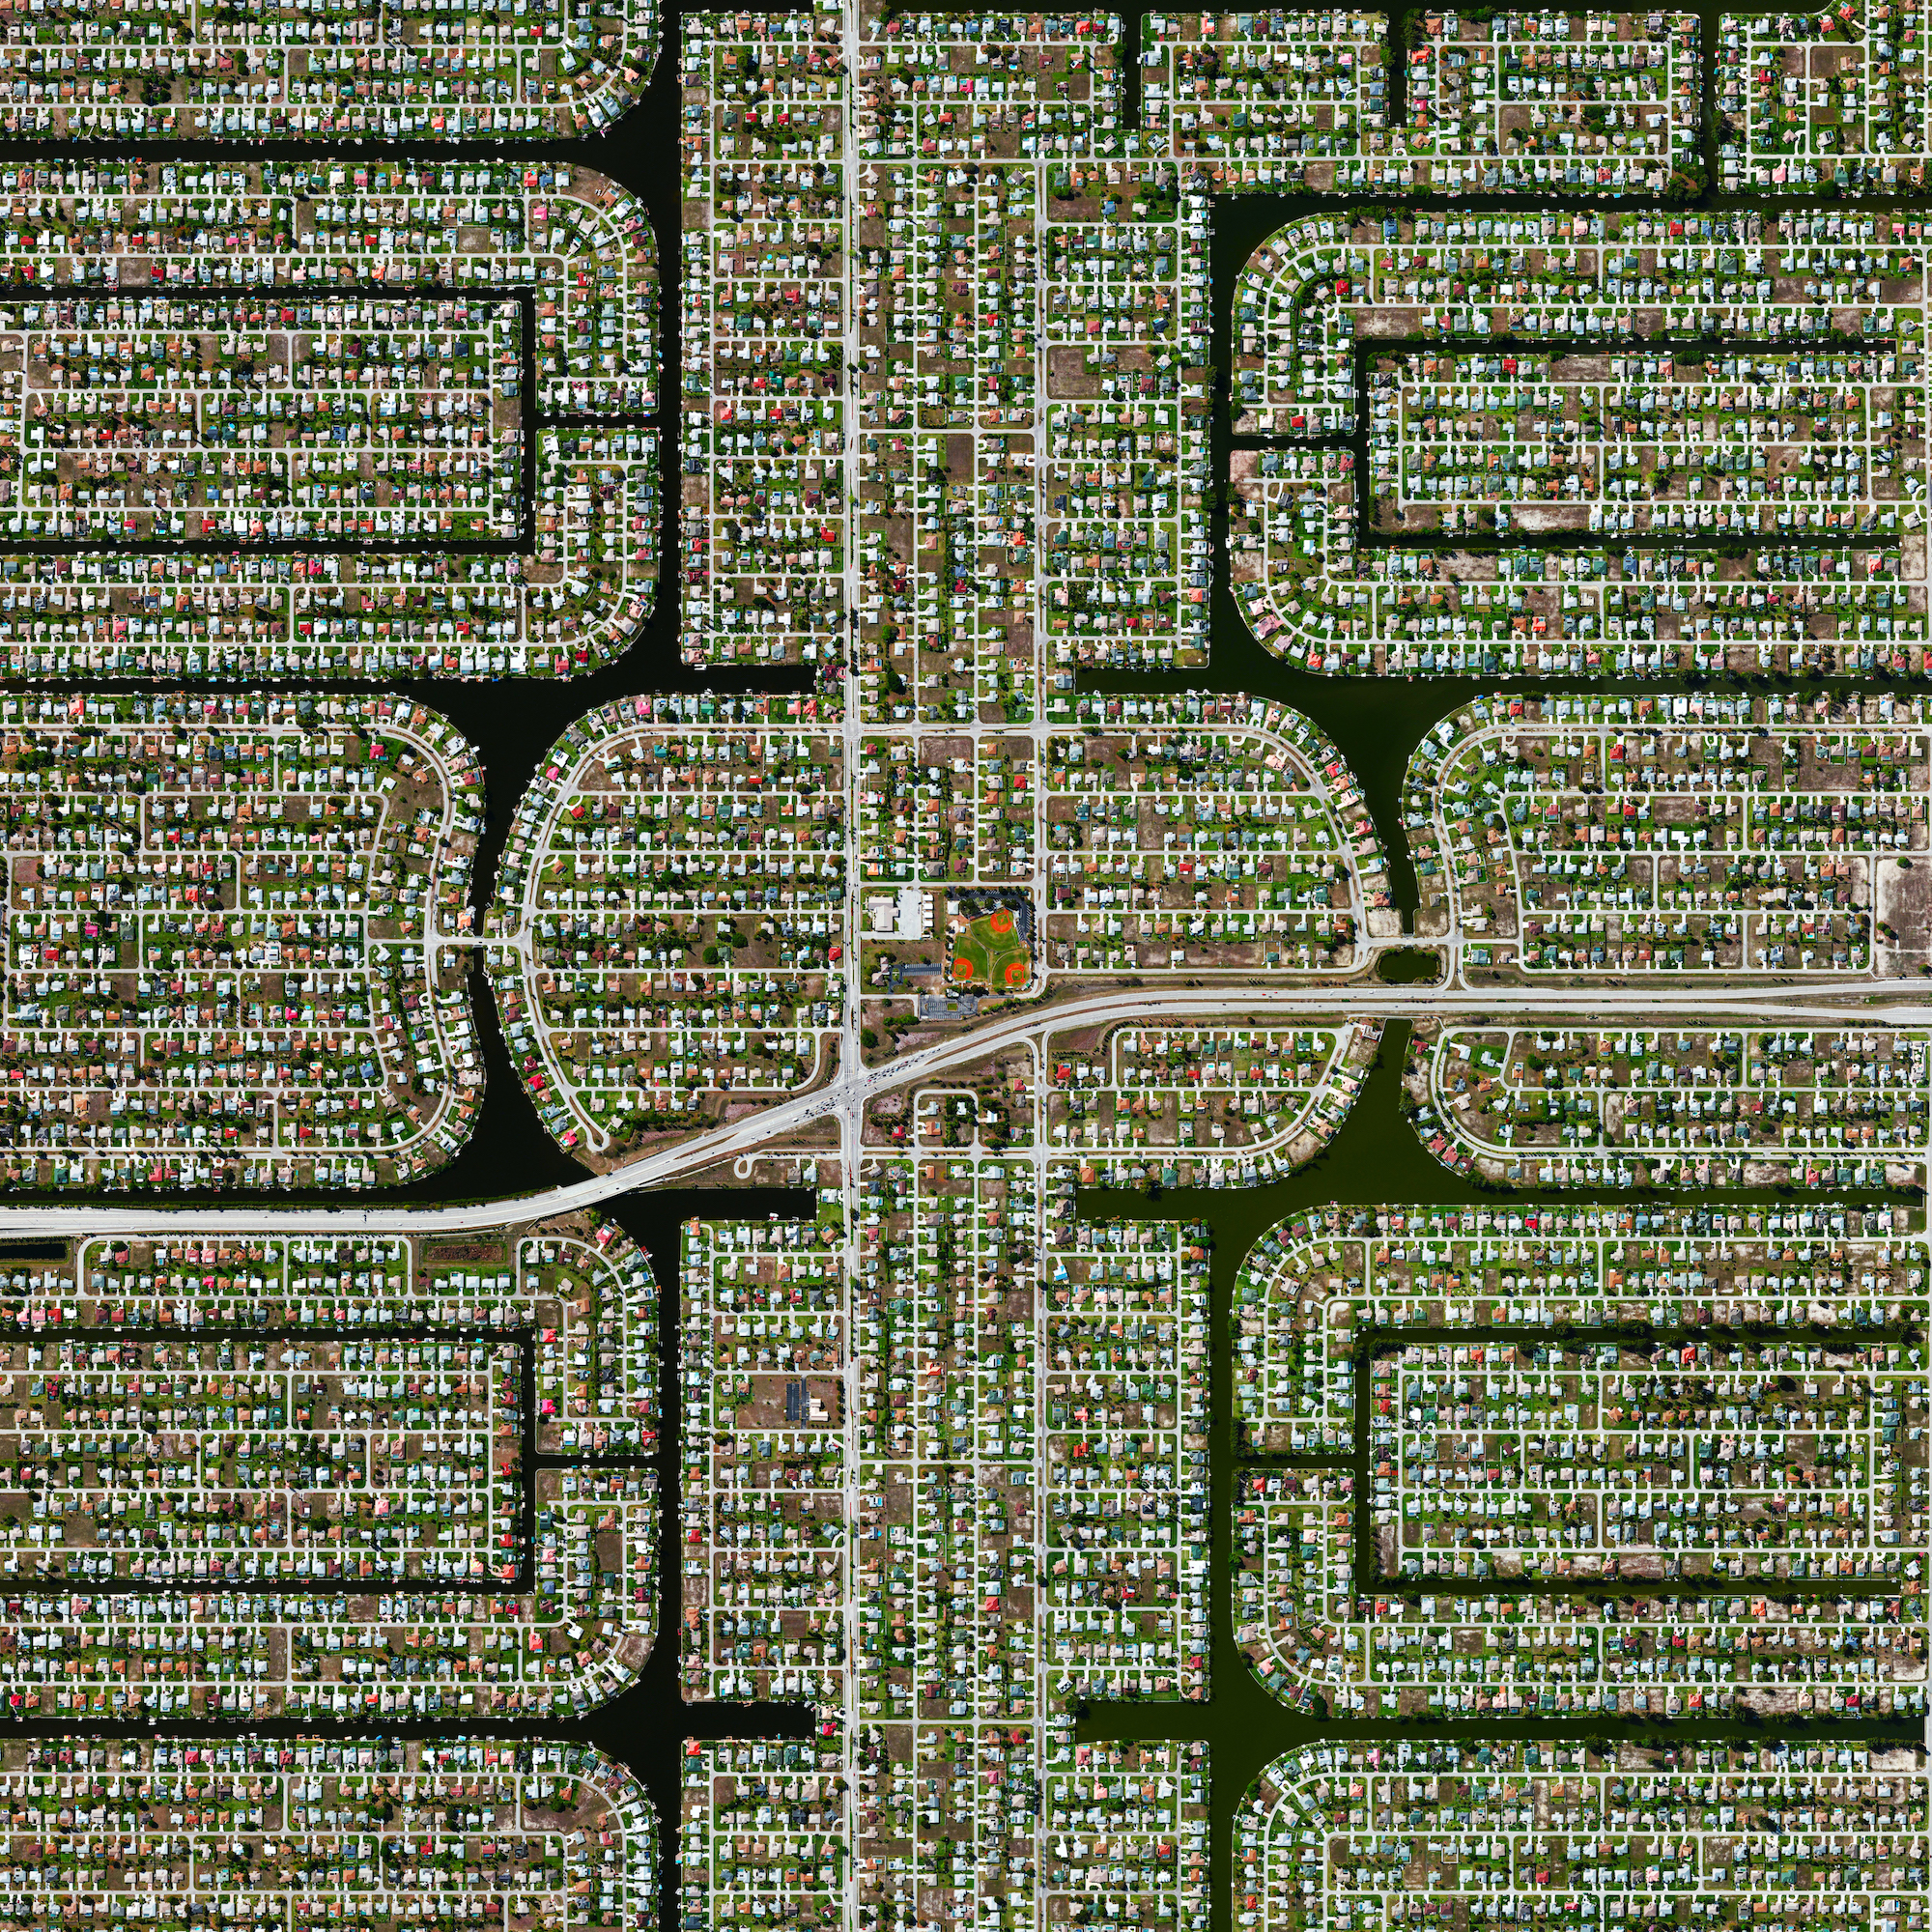 12/16/2016  Residential development  Cape Coral, Florida  26.604391°, –81,958473°    I'm heading home from Florida today and excited that I'll have the window seat.Because many cities in the state contain master-planned communities, often built on top of waterways in the latter half of the twentieth century, there are a number of intricate designs that are visible from the Overview perspective. Here is one particular development in Cape Coral, a city with a population of 165,831 people.